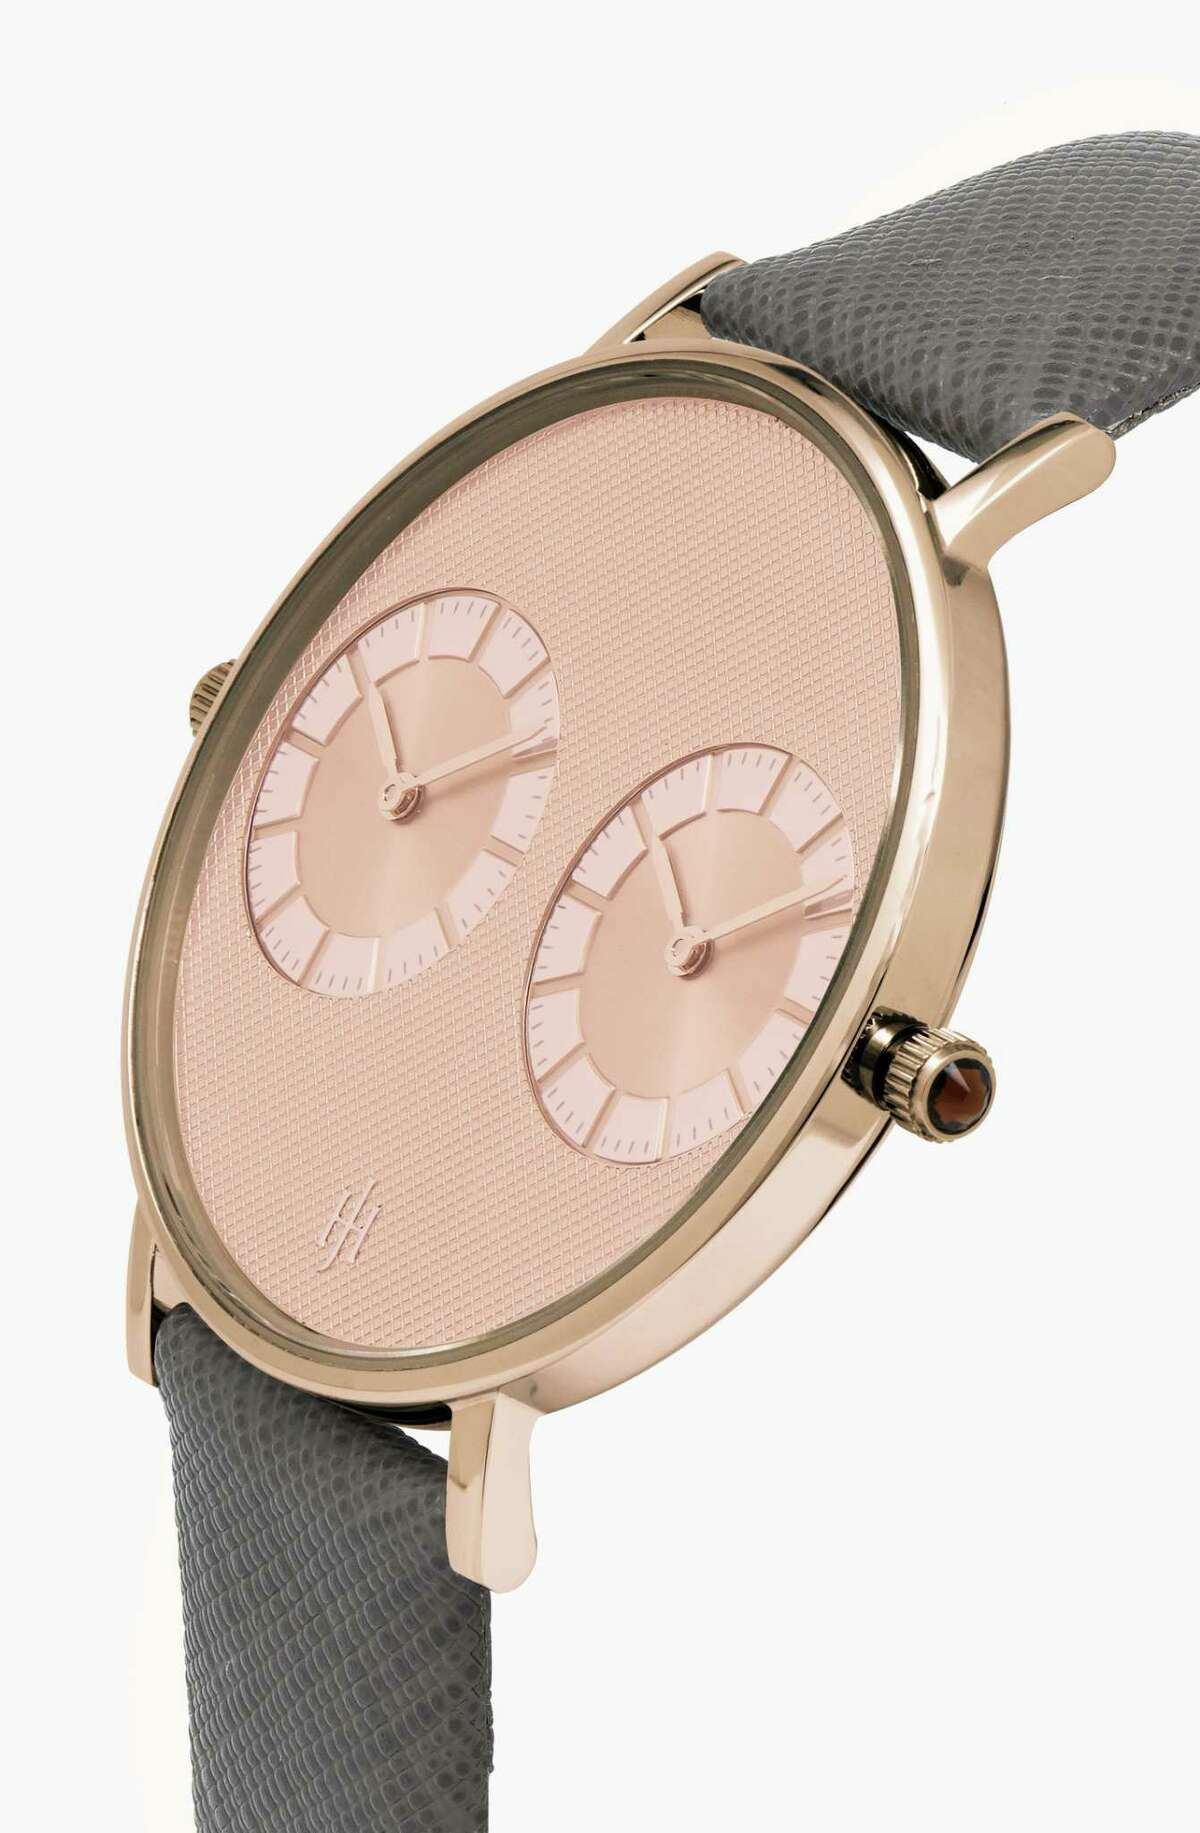 The Janus Dial watch inspired by London features gray and rose gold colors.